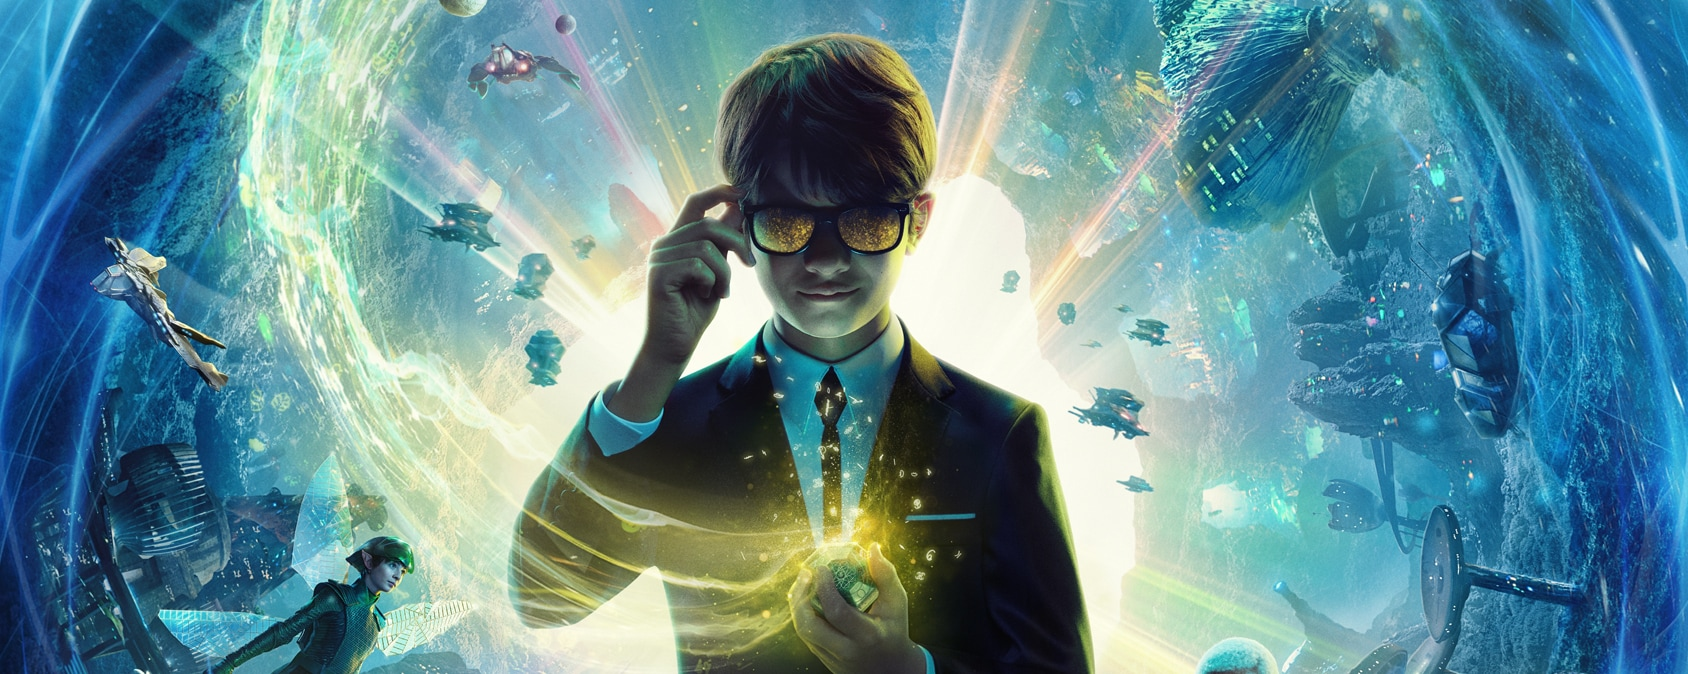 "Disney's Fantastical Epic Adventure ""Artemis Fowl"" Streaming Exclusively On Disney+ Beginning June 12"